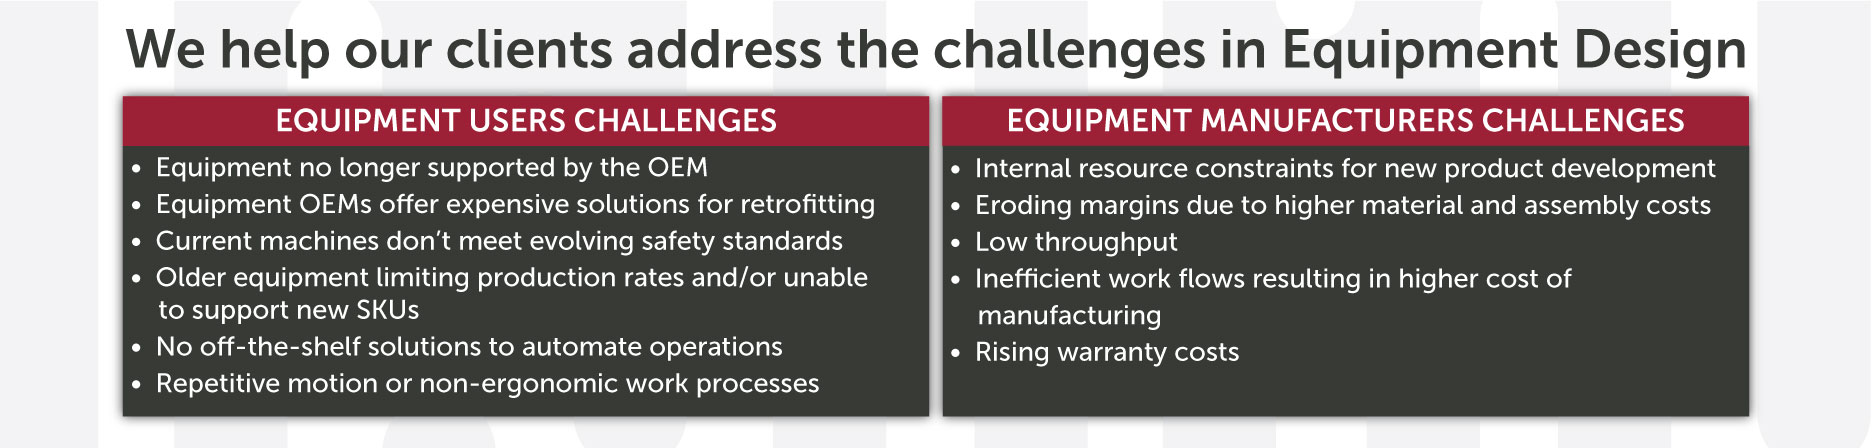 Equipment Design challenges of Users and Manufacturers